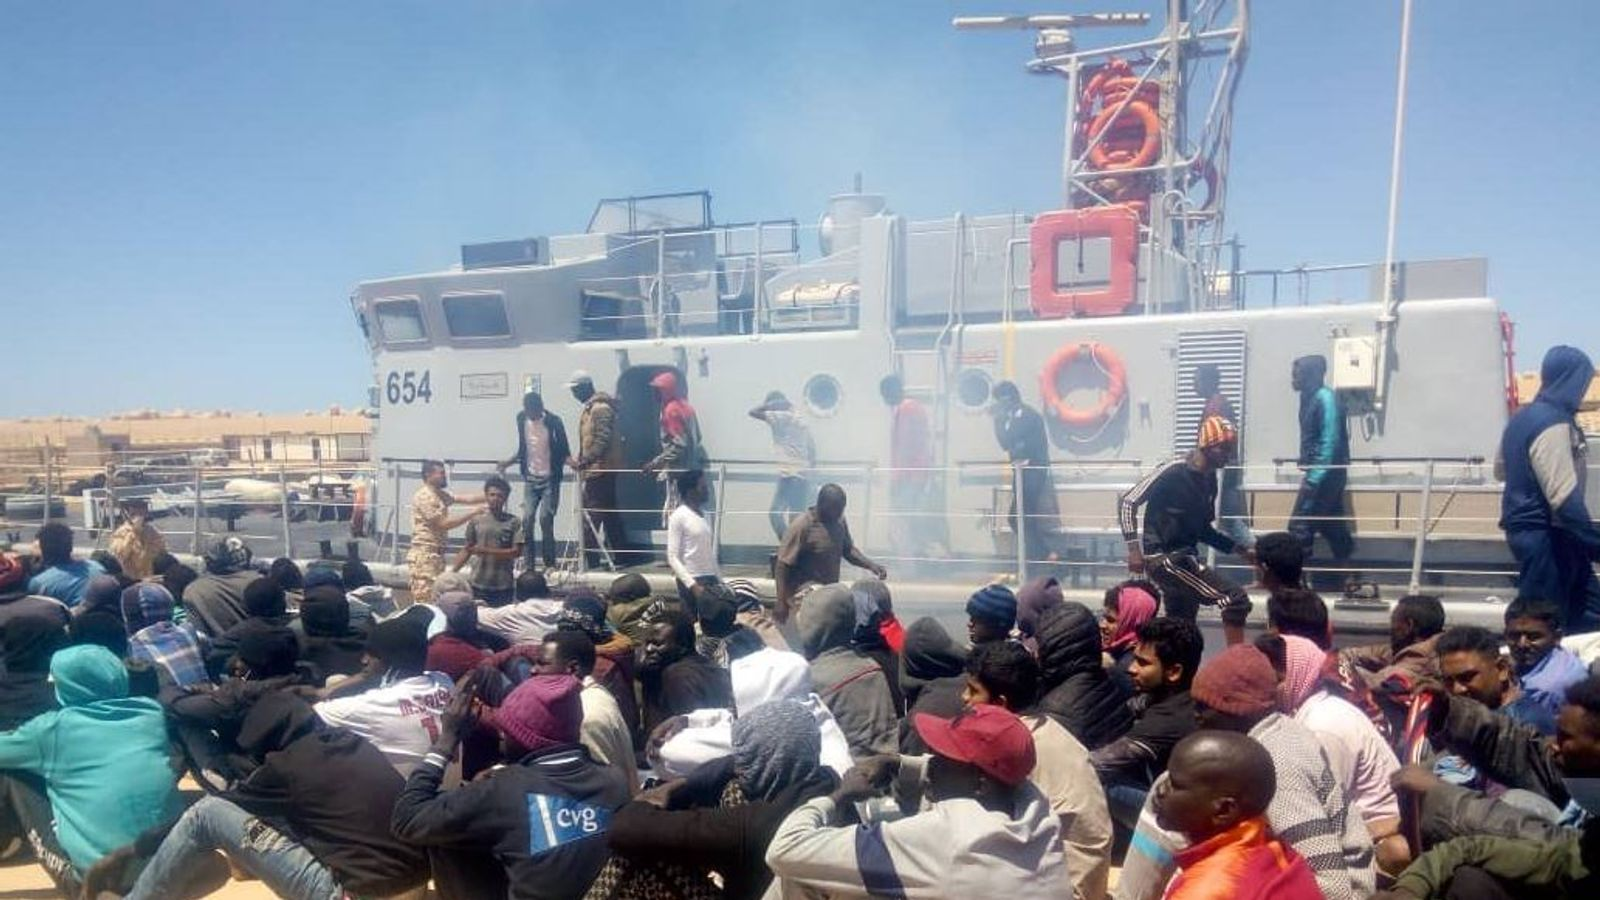 Hundreds of migrants saved after boats get into trouble in Med